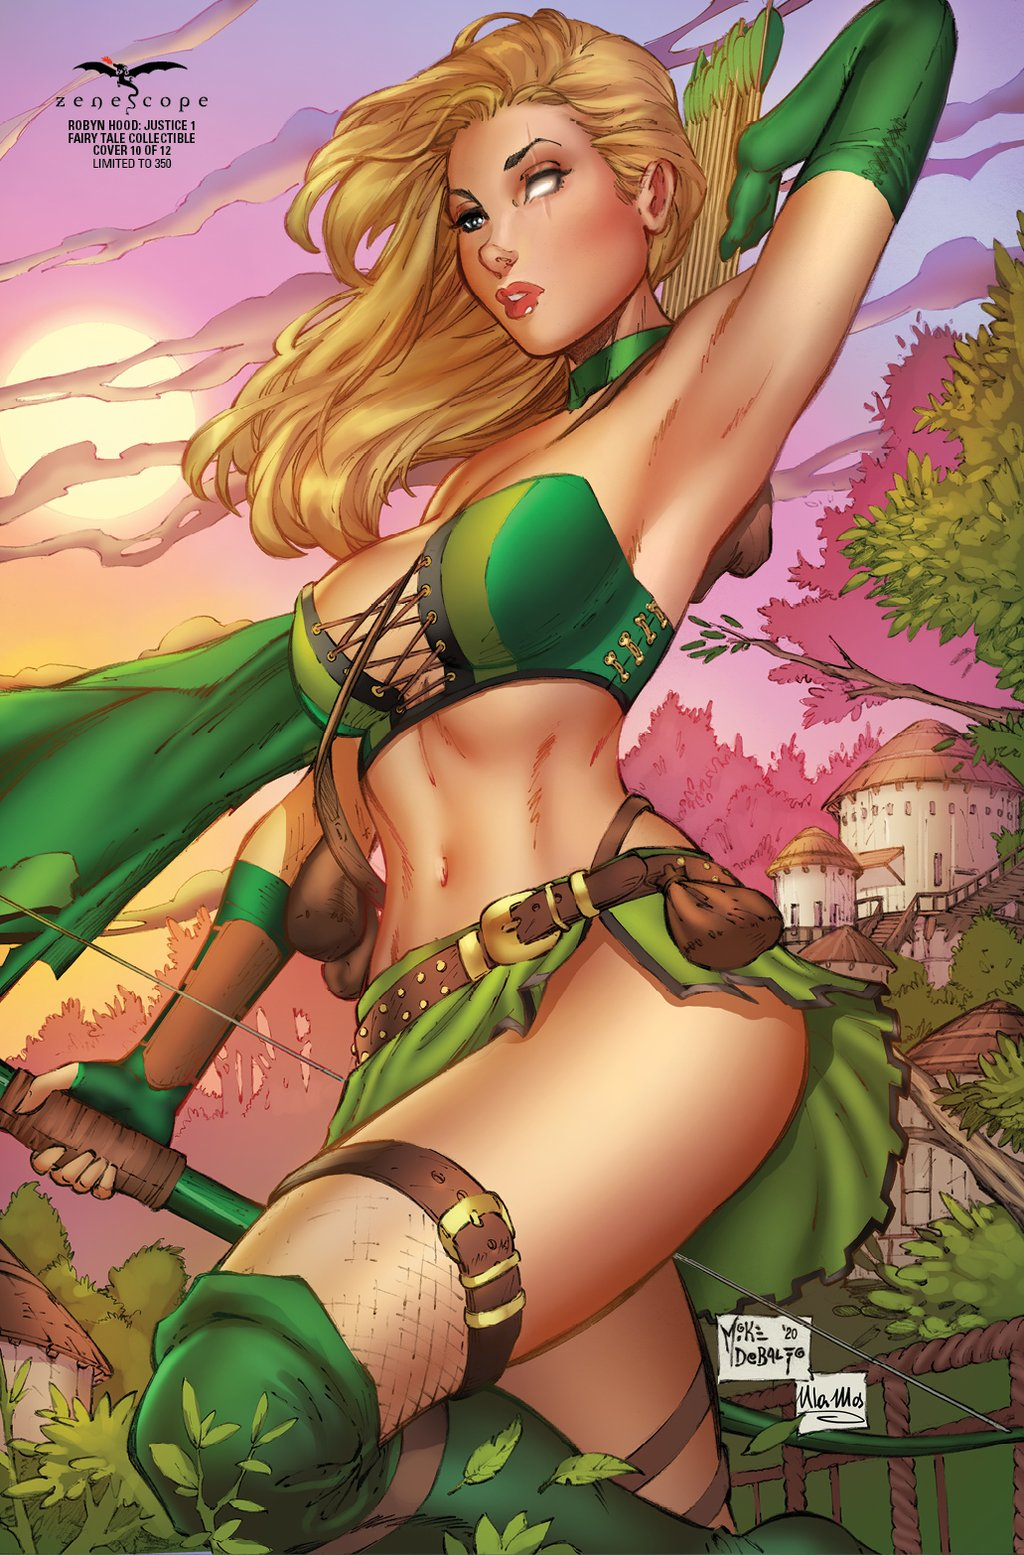 Robyn Hood Justice #1 Cover H Mike DeBalfo Fairy Tale Exclusive LTD 350